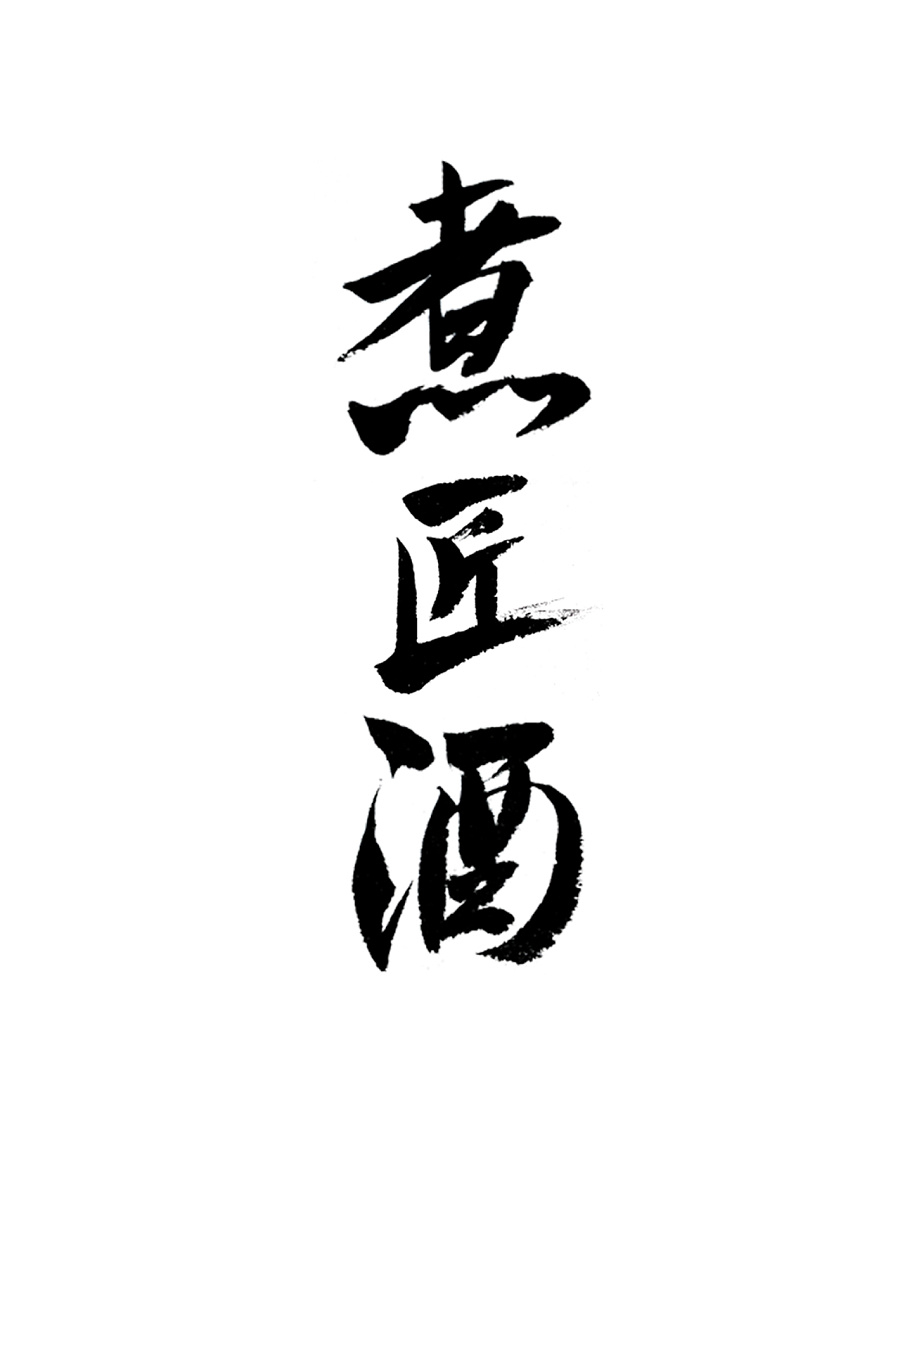 chinesefontdesign.com 2016 11 14 19 55 23 17P Traditional Chinese calligraphy art appreciation